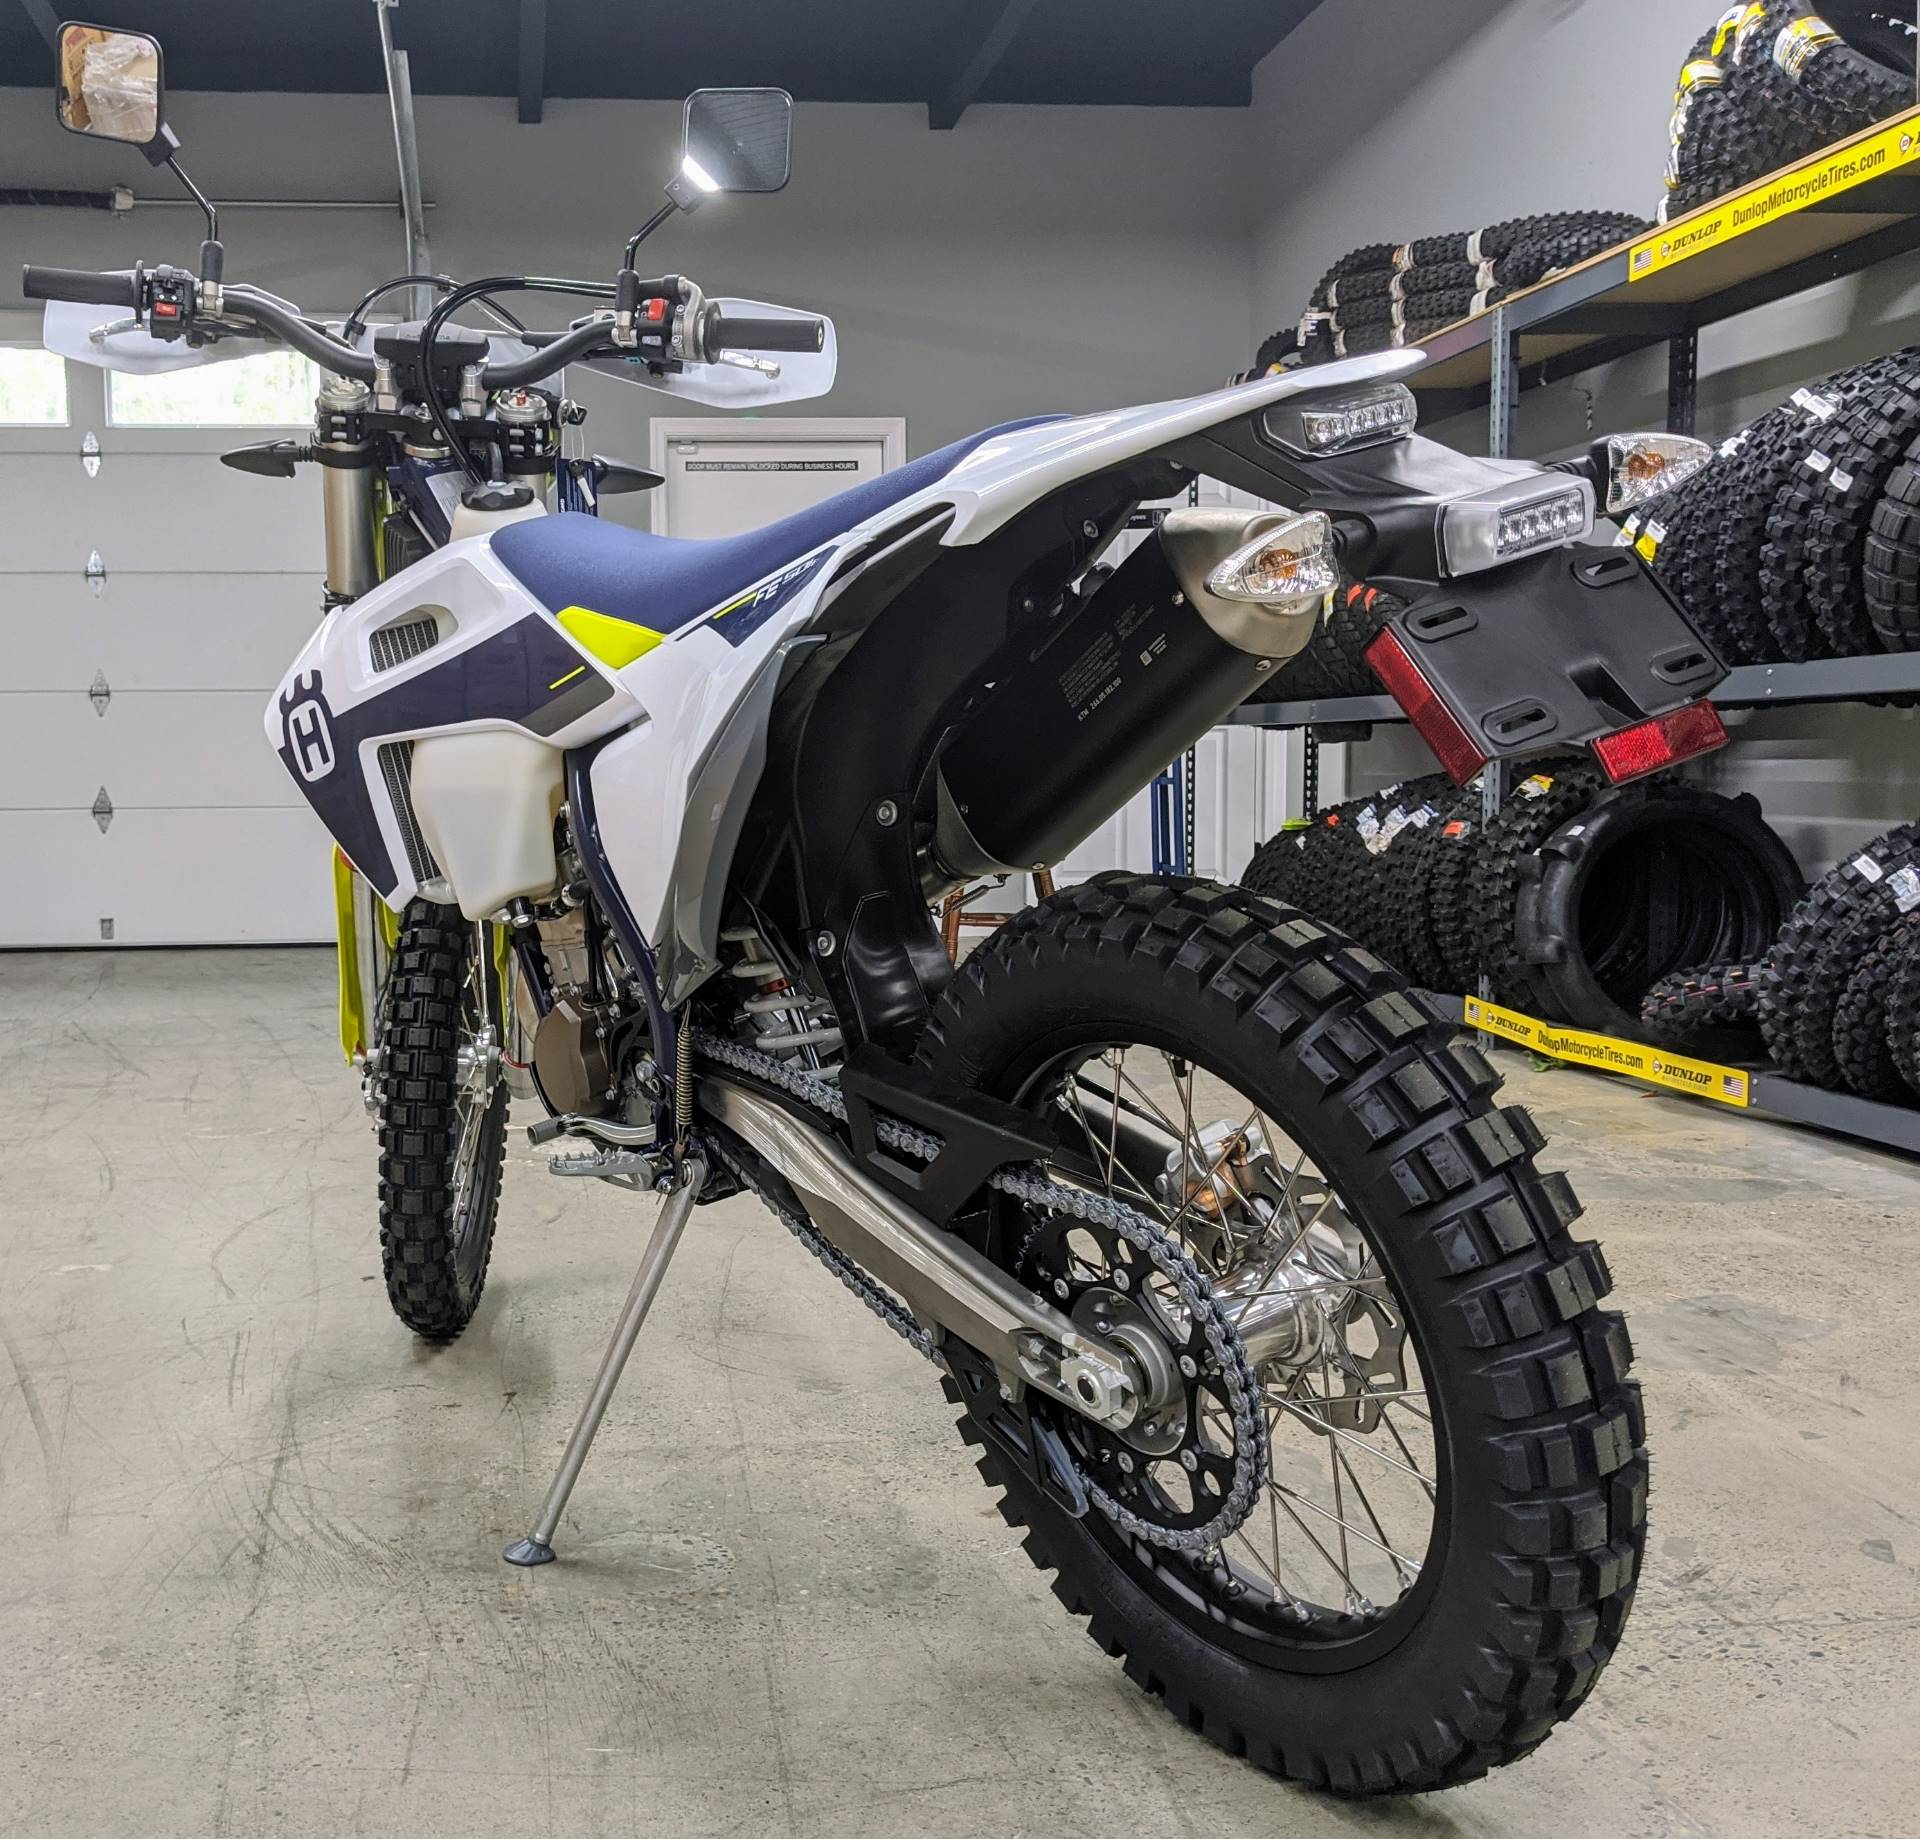 2021 Husqvarna FE 501s in Gresham, Oregon - Photo 4